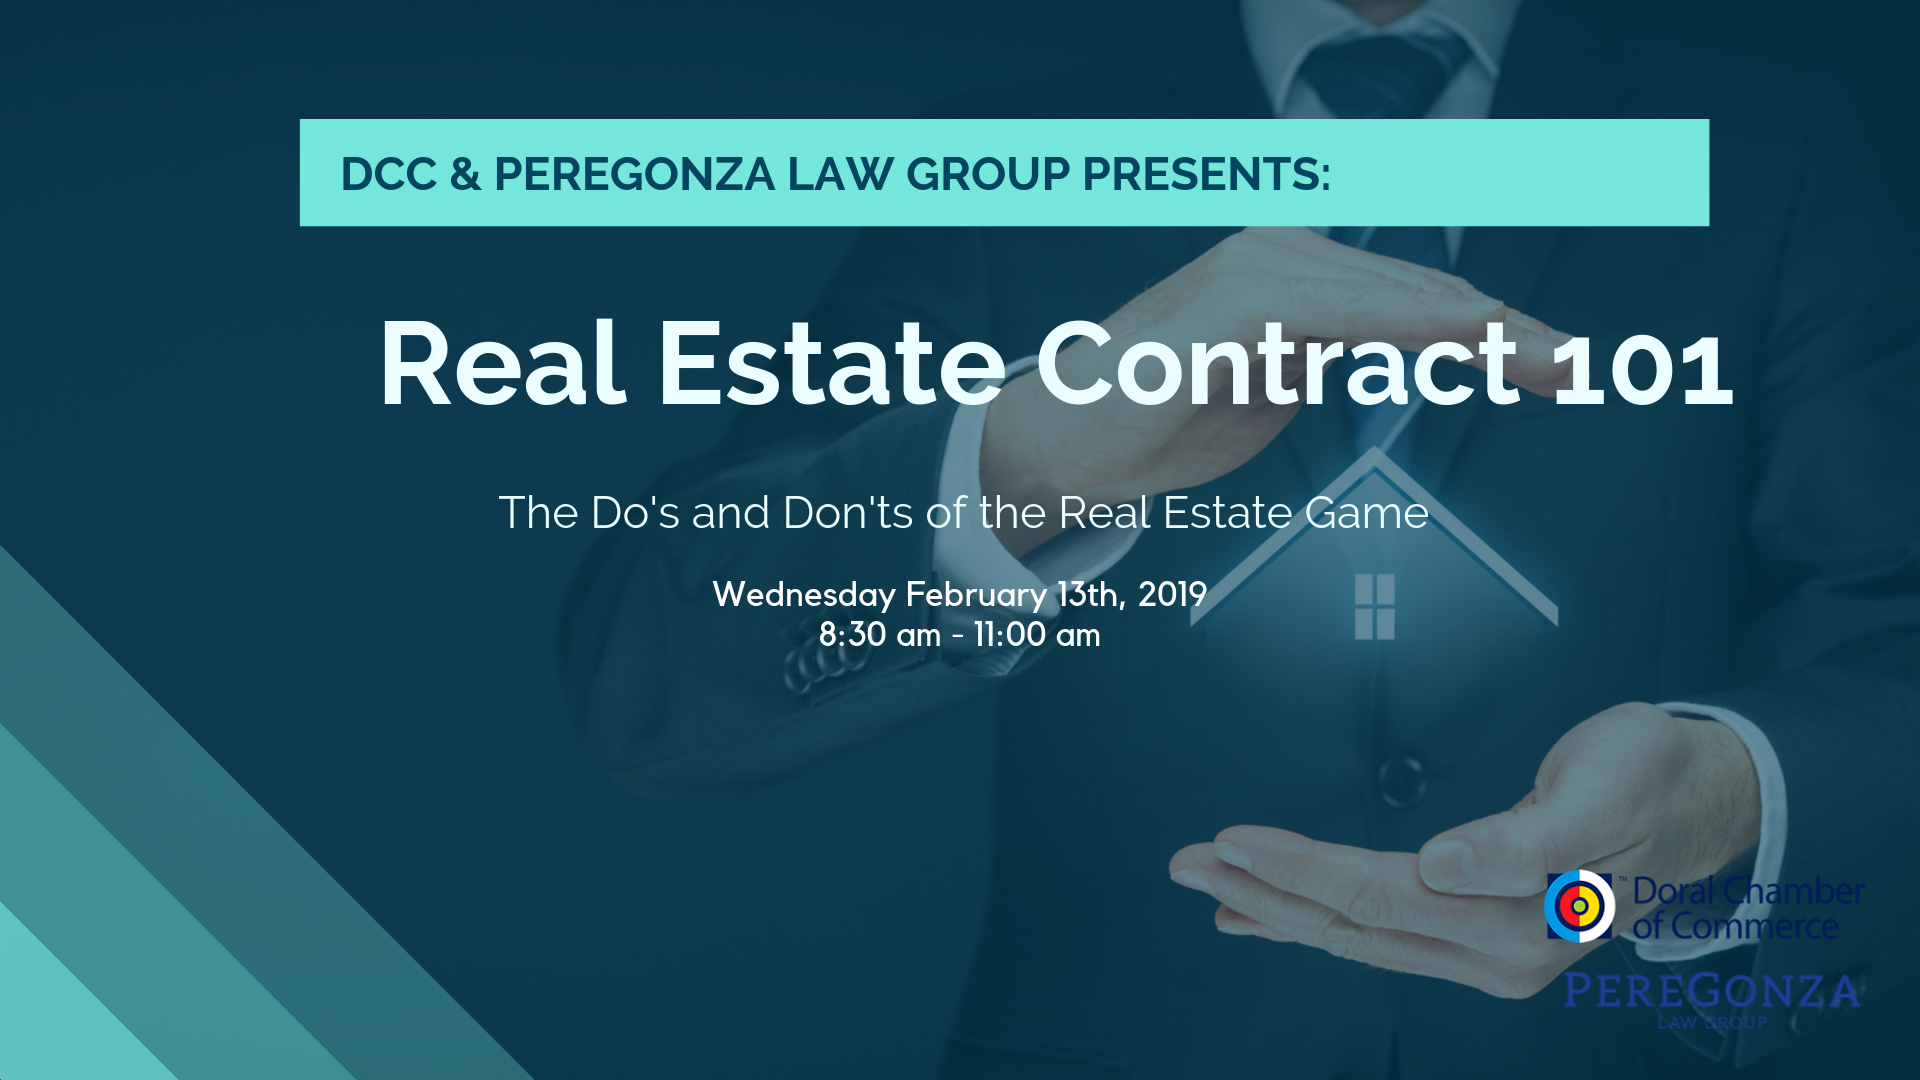 DCC & PereGonza Law Present: Real Estate Contract 101 The Do's and Don'ts of the Real Estate Game, Miami-Dade, Florida, United States